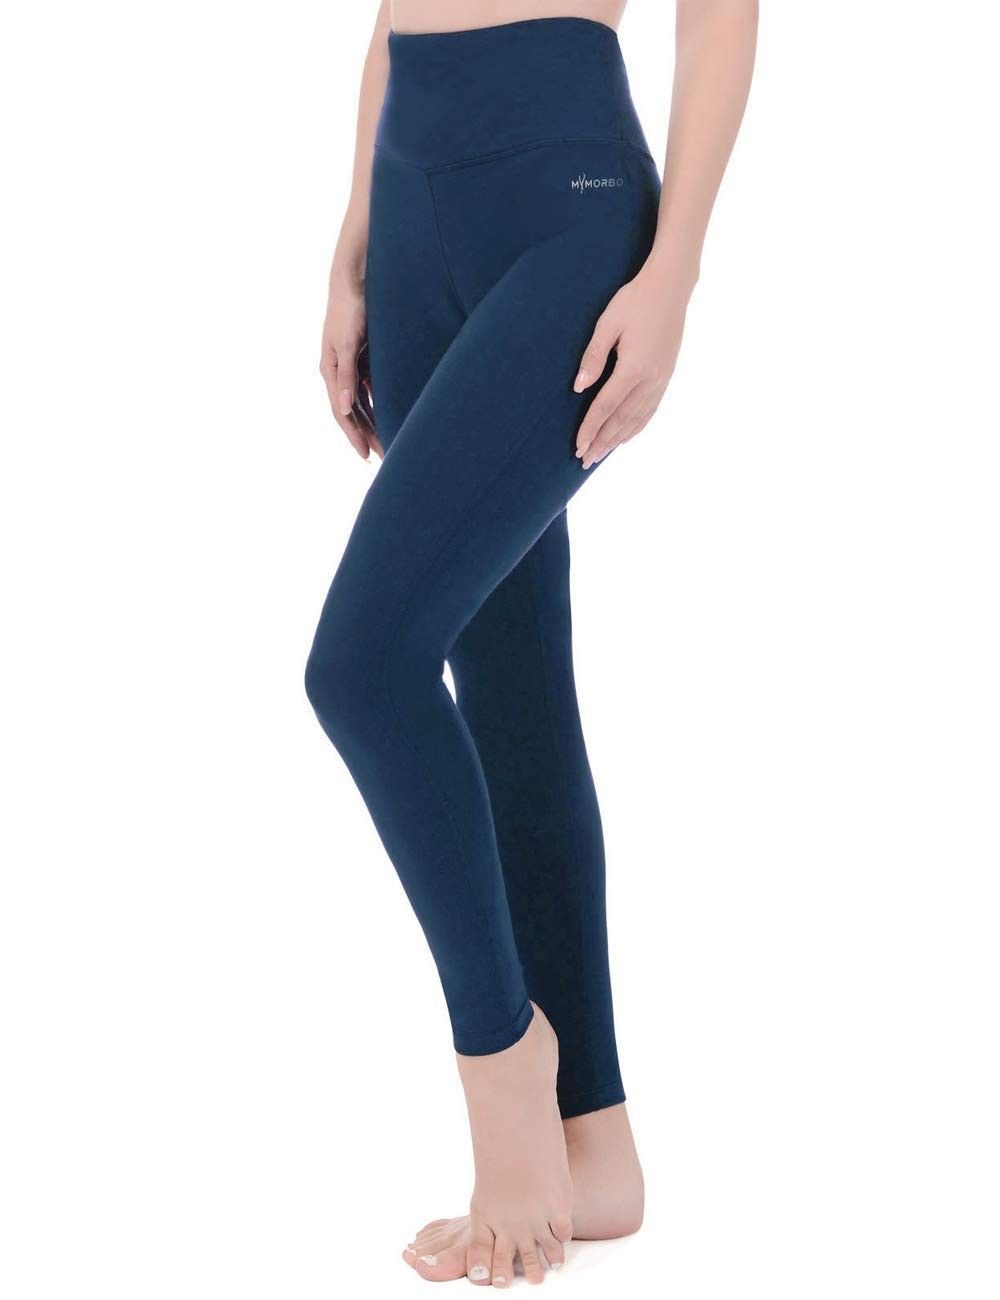 Women's Ankle Legging Stretch Tummy Control High Waisted Yoga Activewear Workout Pants Inner Pocket...